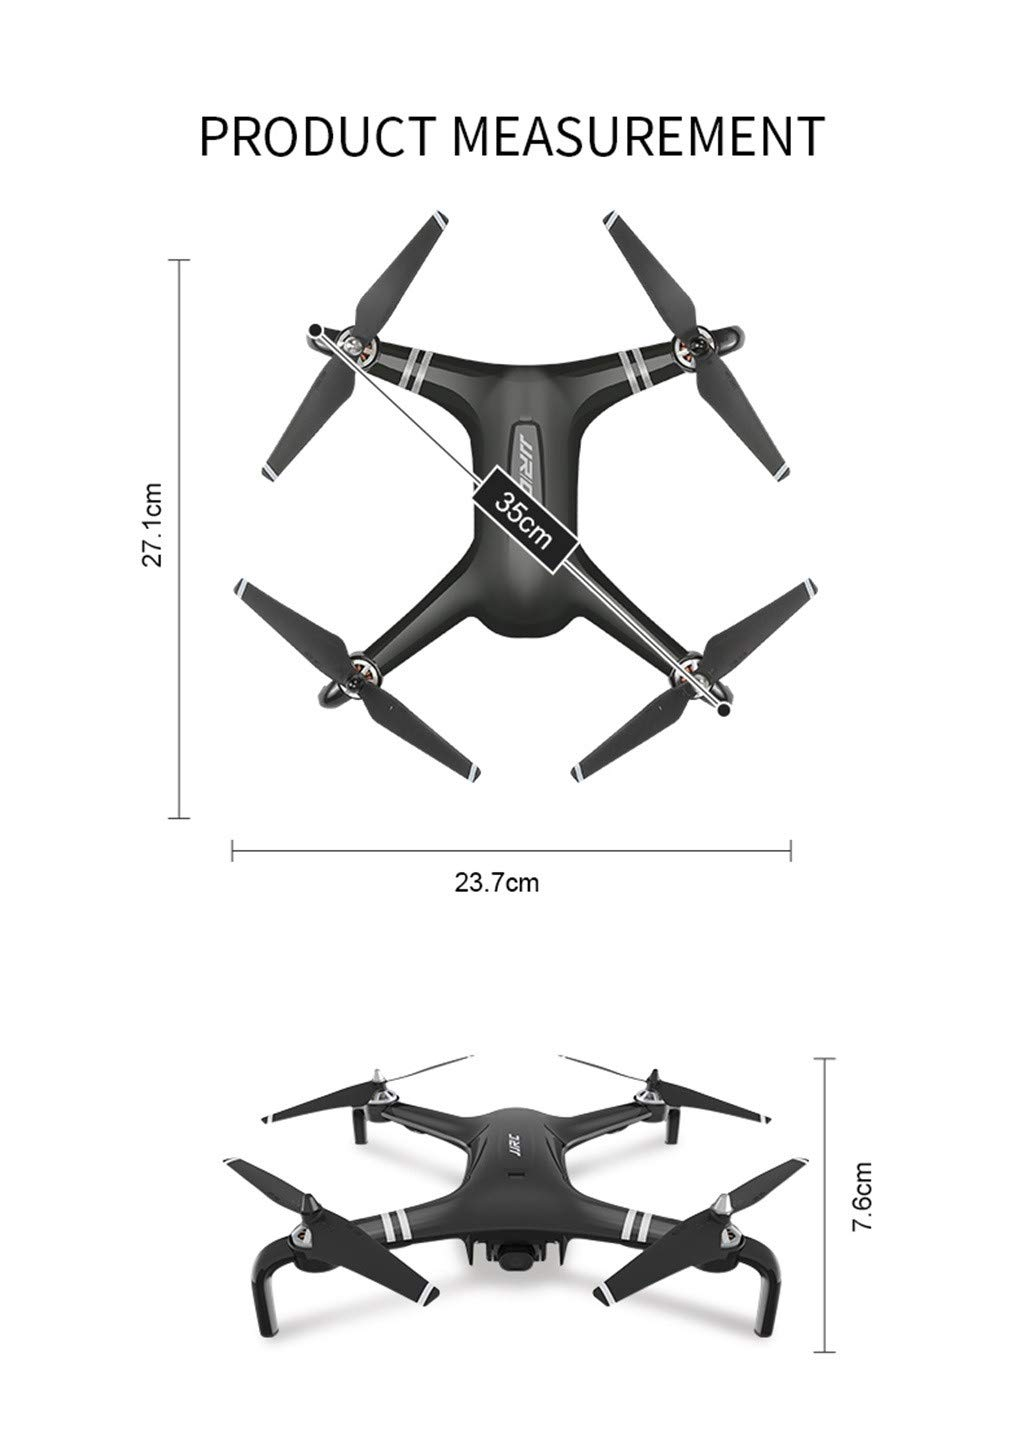 MOZATE JJRC X7 5G-WiFi FPV GPS 1080P HD Camera Remote RC Drone Quadcopter Altitude Hold (Black) by MOZATE (Image #3)